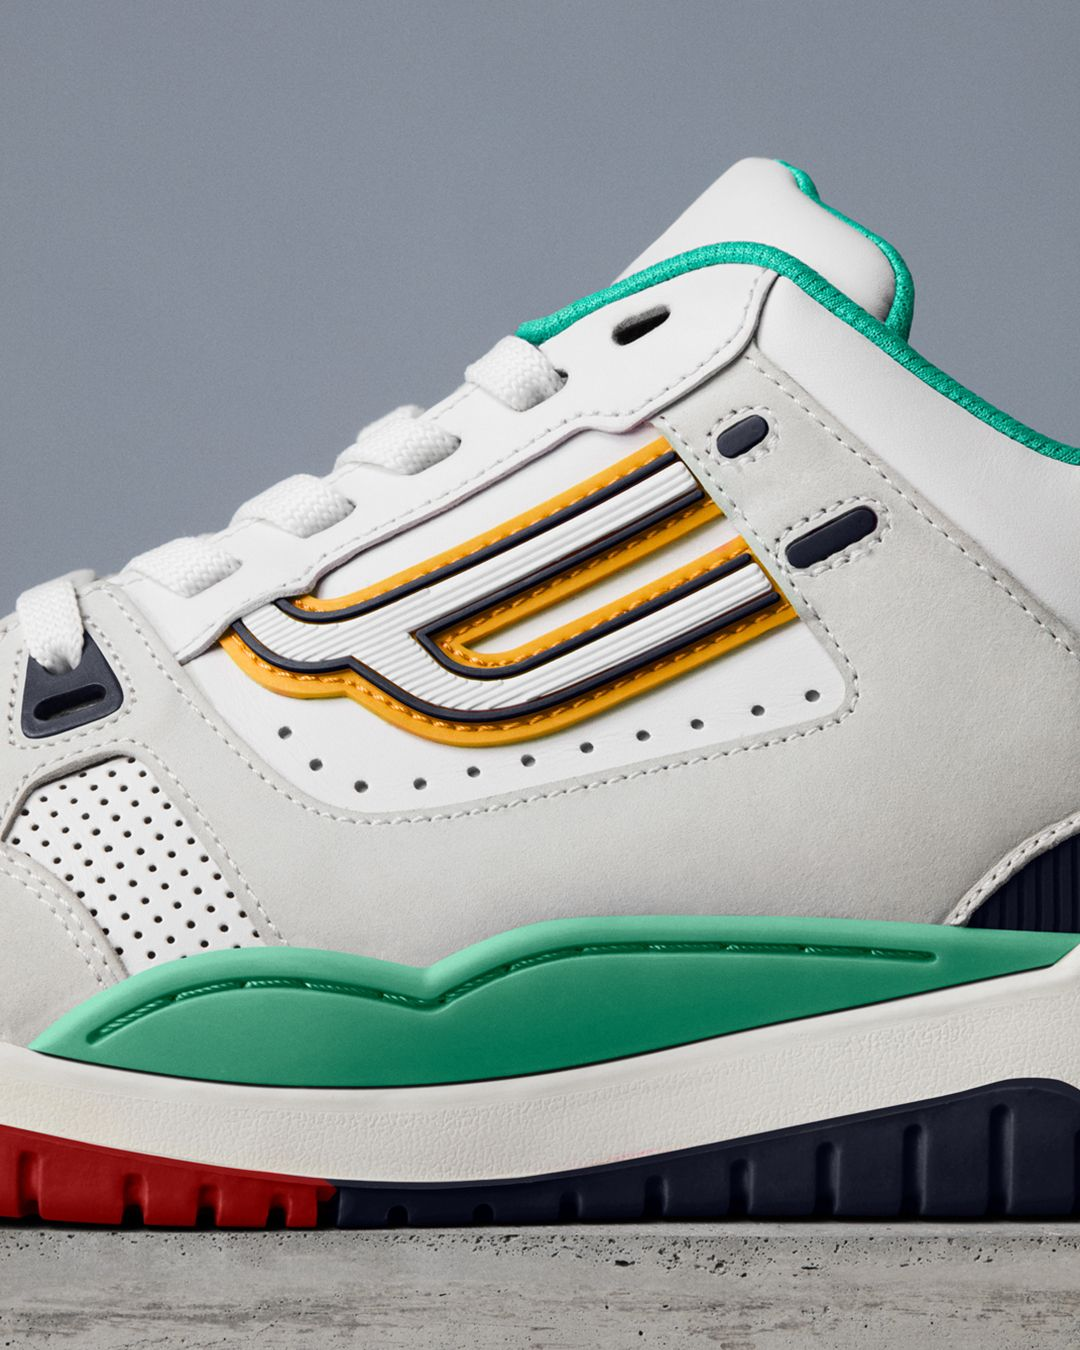 The Bally Champion sneaker combines